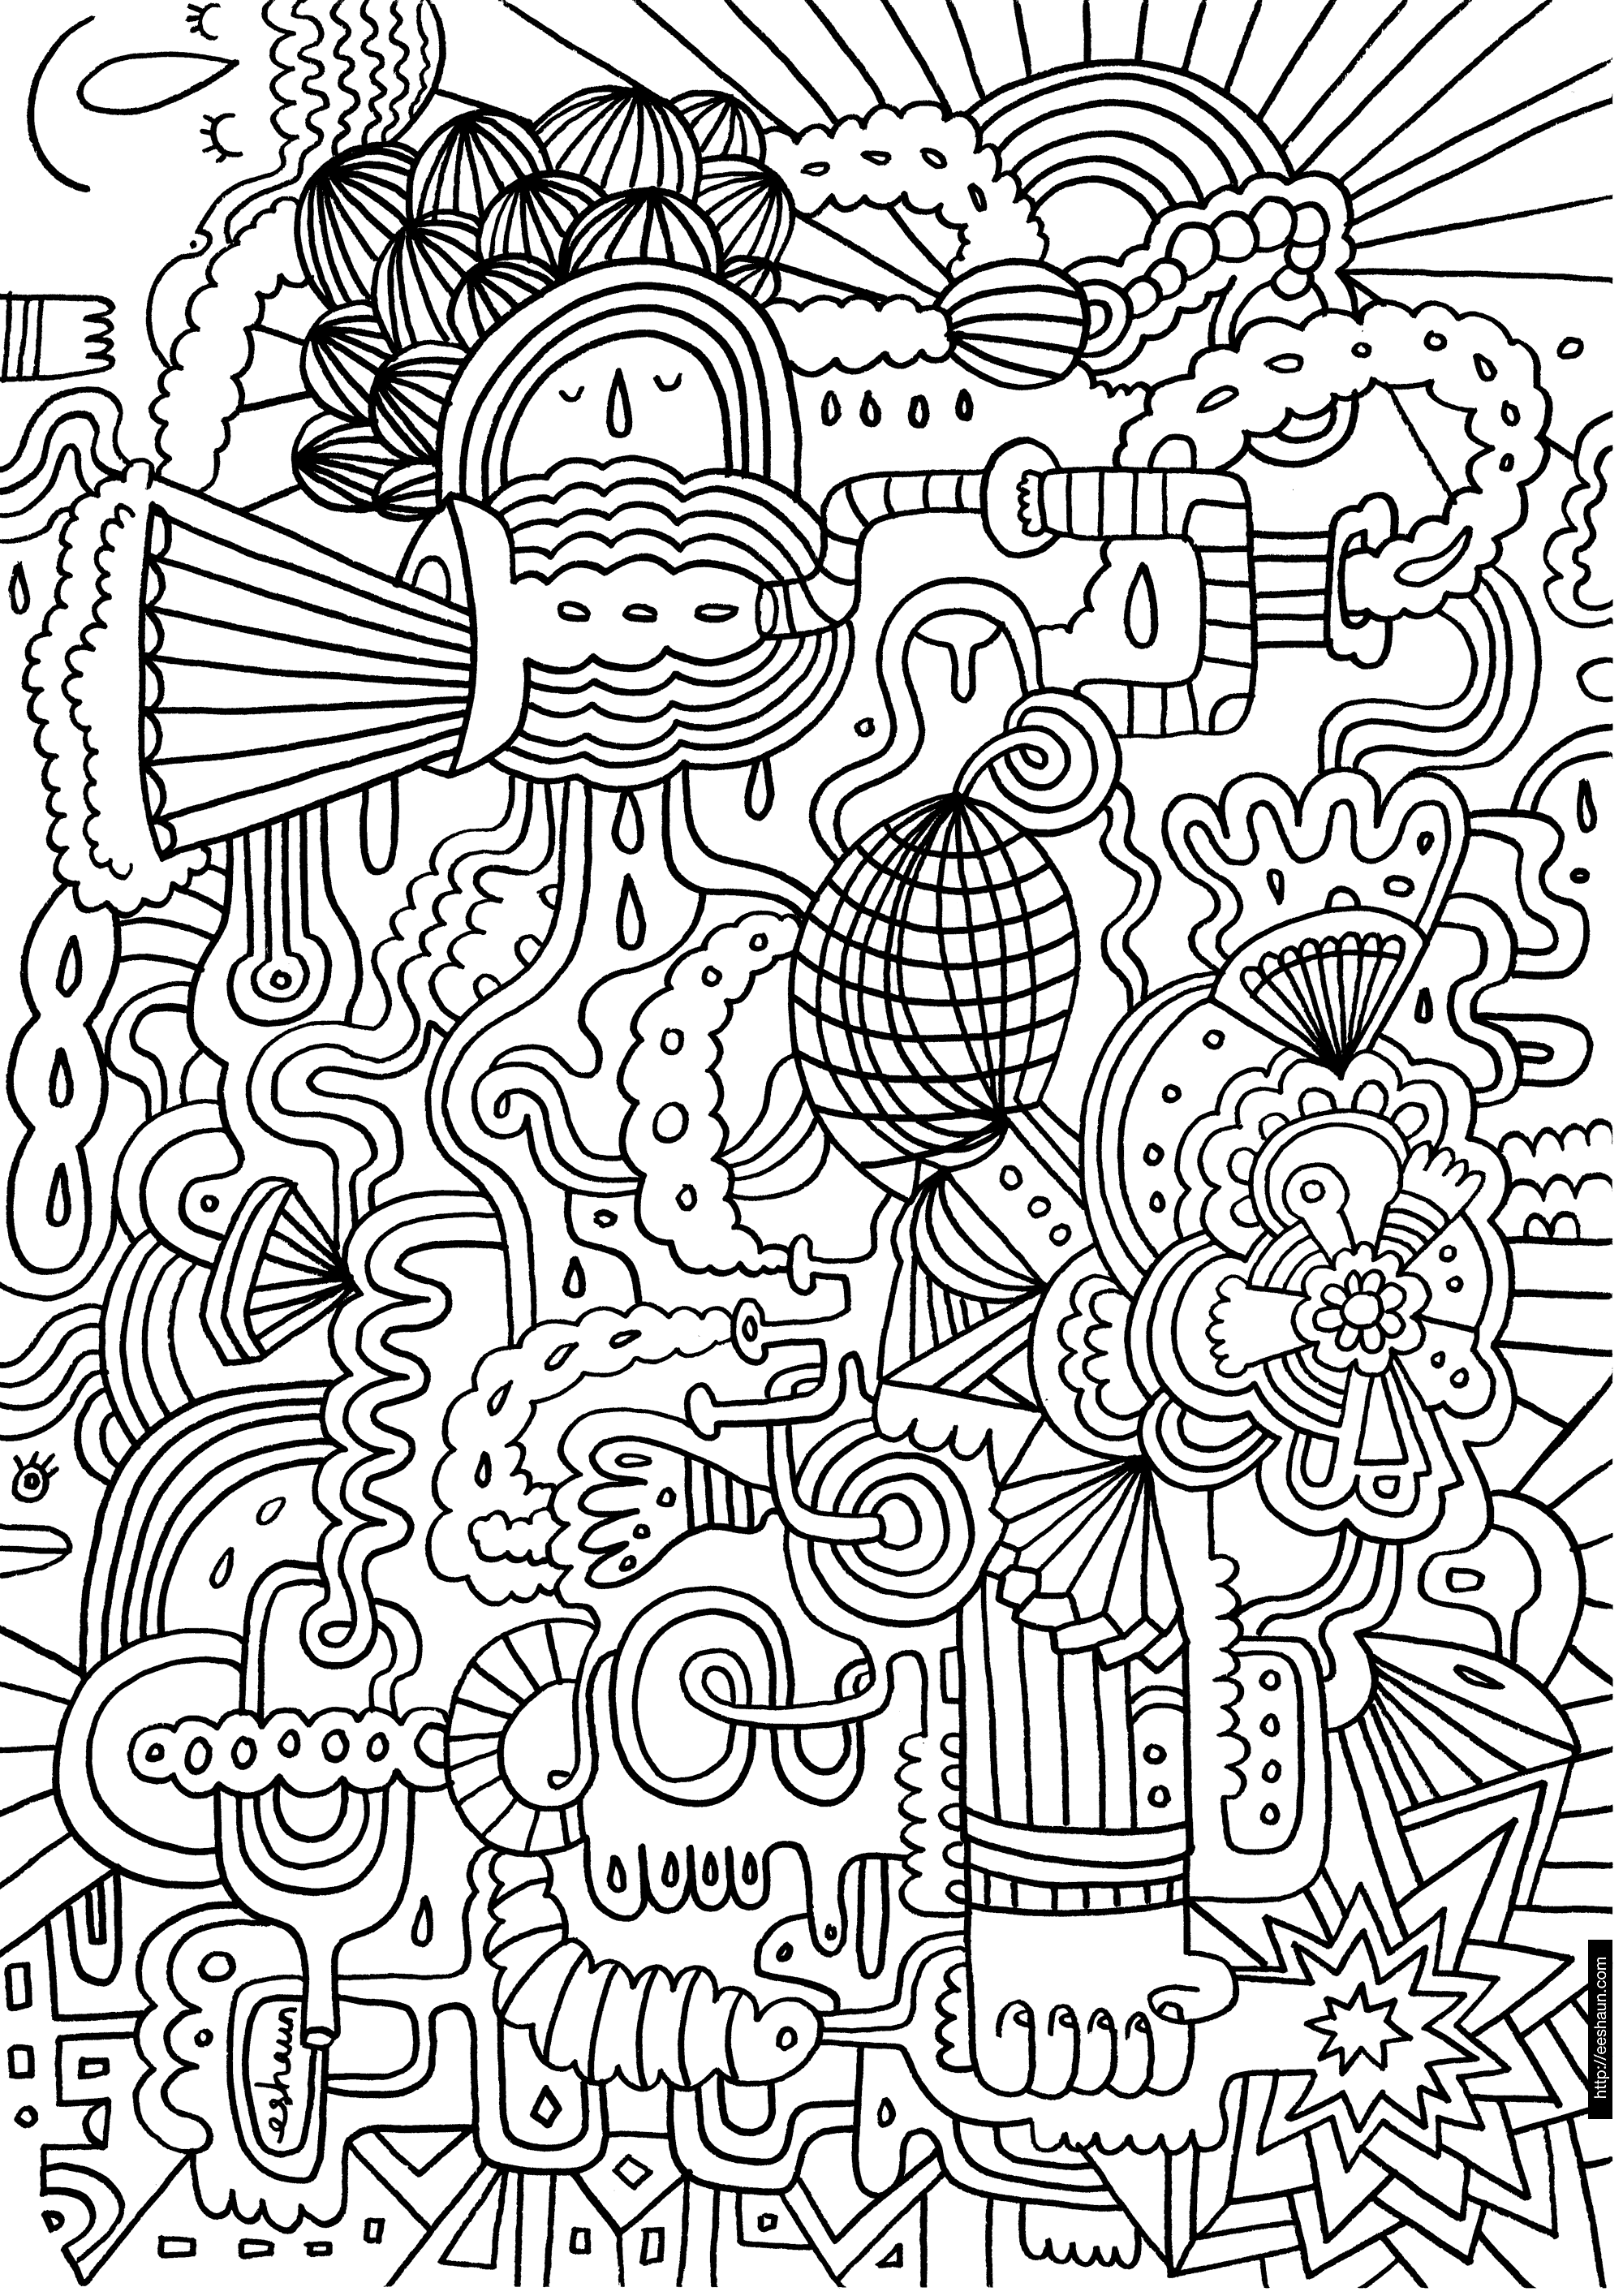 coloring pages for adults patterns hard coloring pages   Free Large Images | Adult Coloring Pages  coloring pages for adults patterns